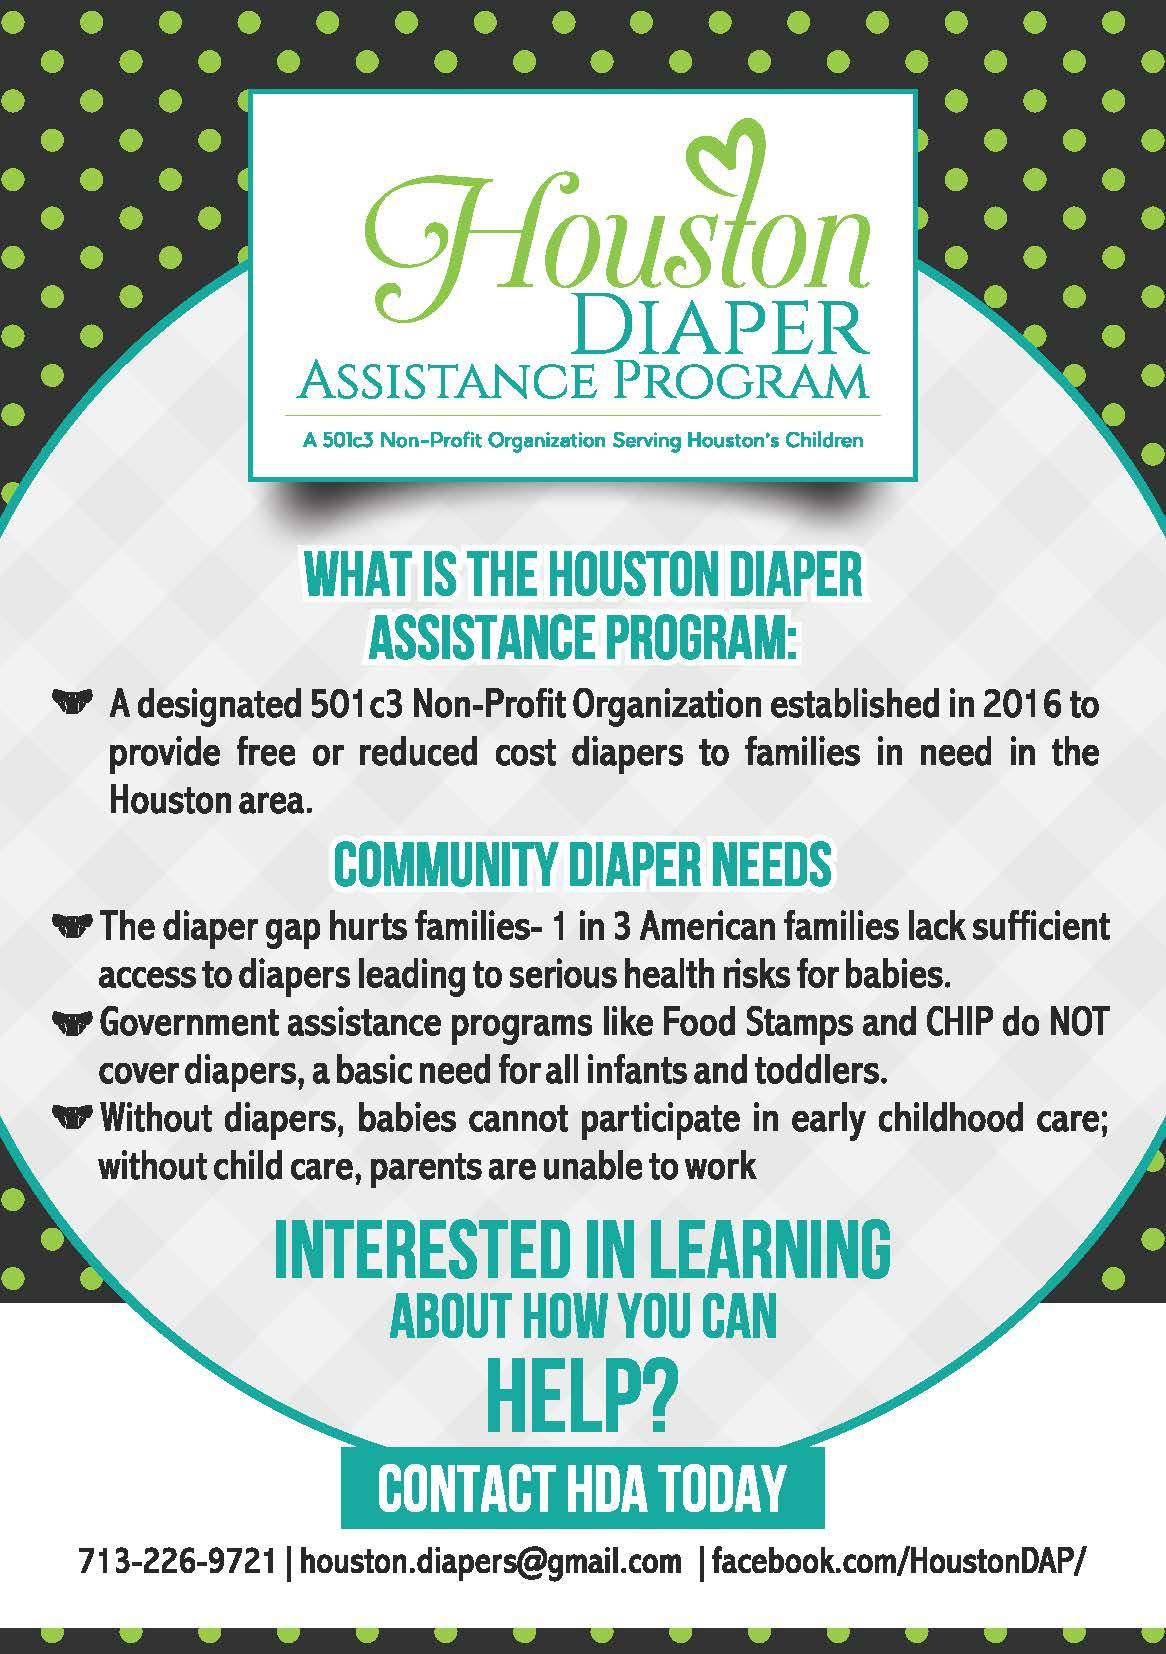 Houston Diaper Assistance Program